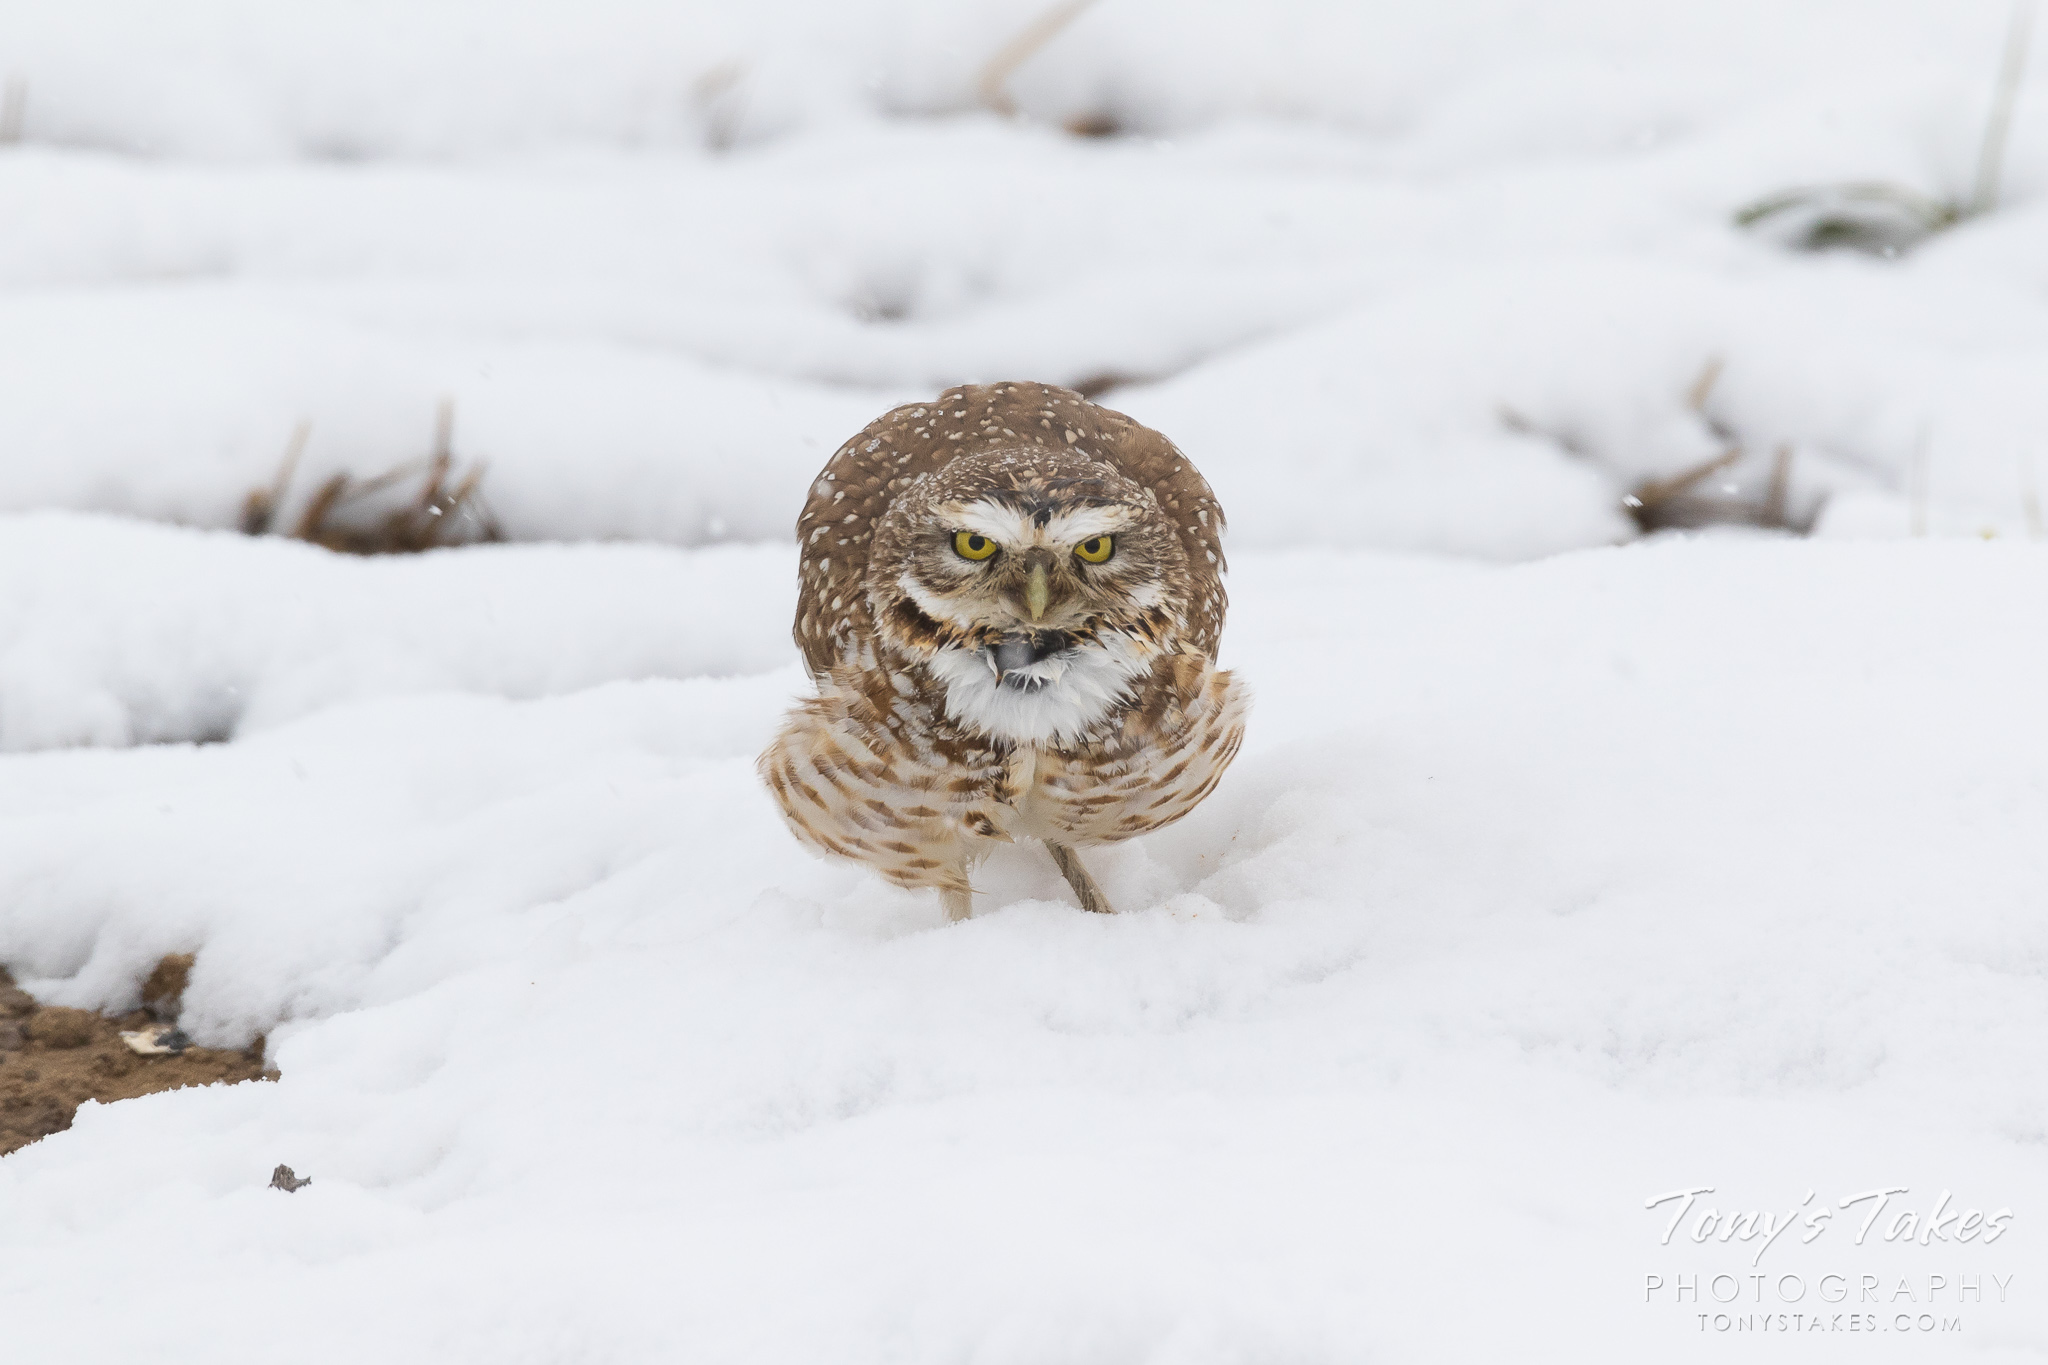 Burrowing owl displays some attitude in the snow